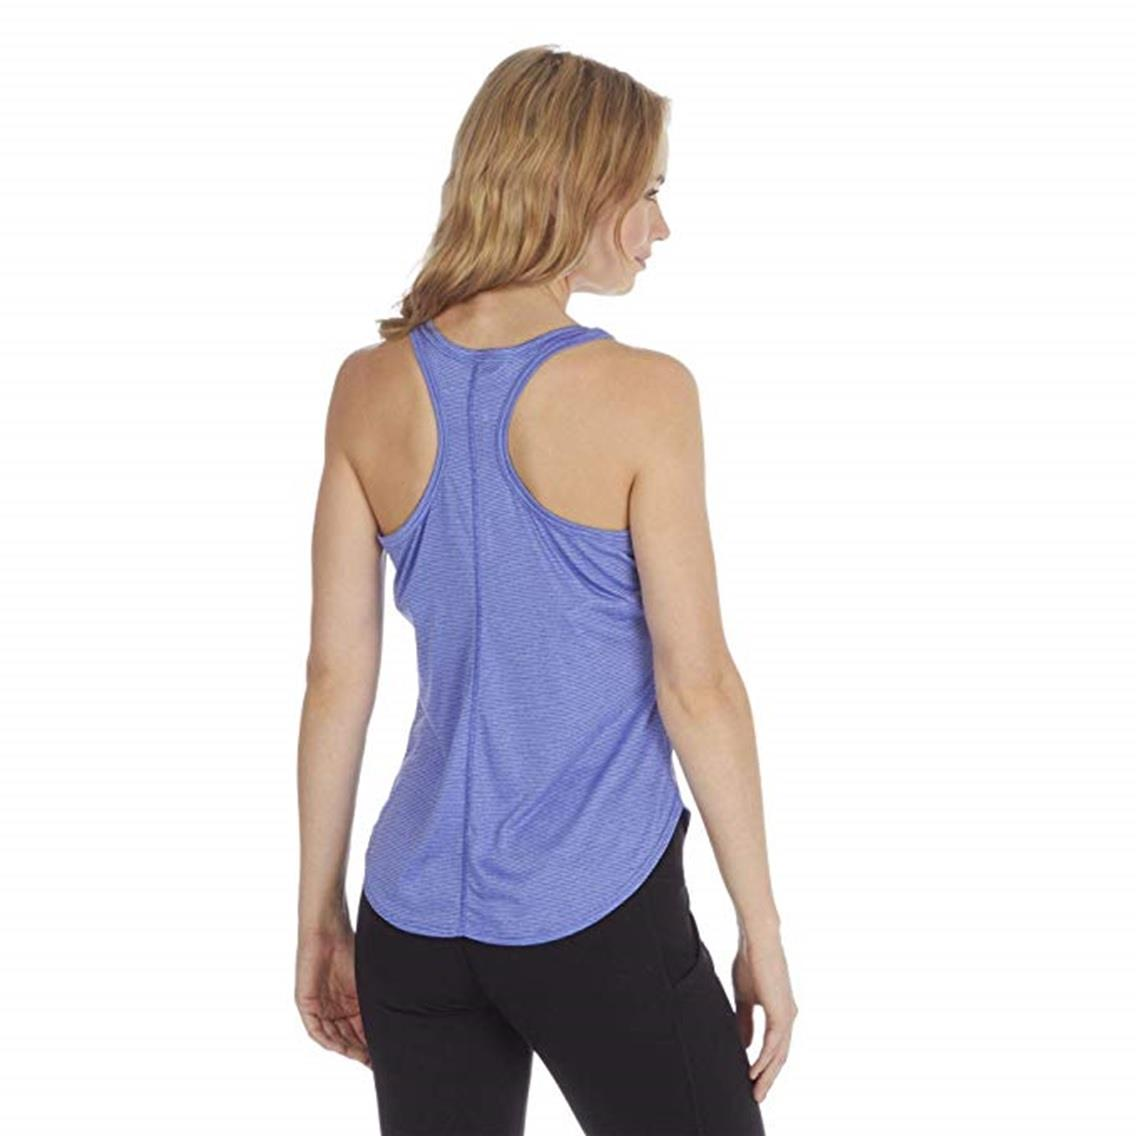 Ladies-Womens-Red-Tag-Active-Racer-Back-Yoga-Gym-Exercise-Vest-Tank-Top thumbnail 15